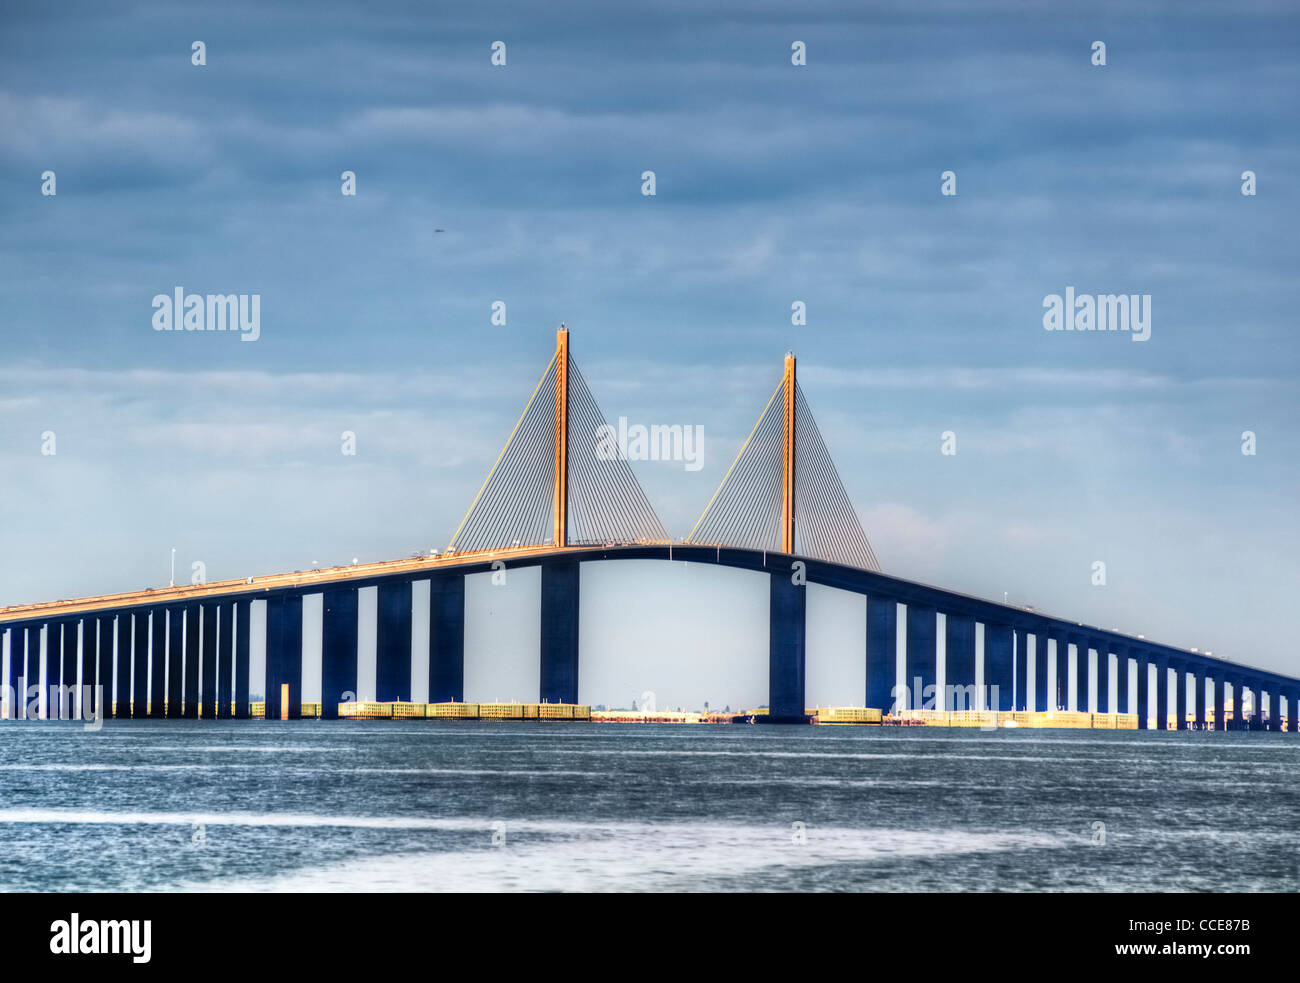 Sunshine Skyway en San Petersburgo, Florida Imagen De Stock